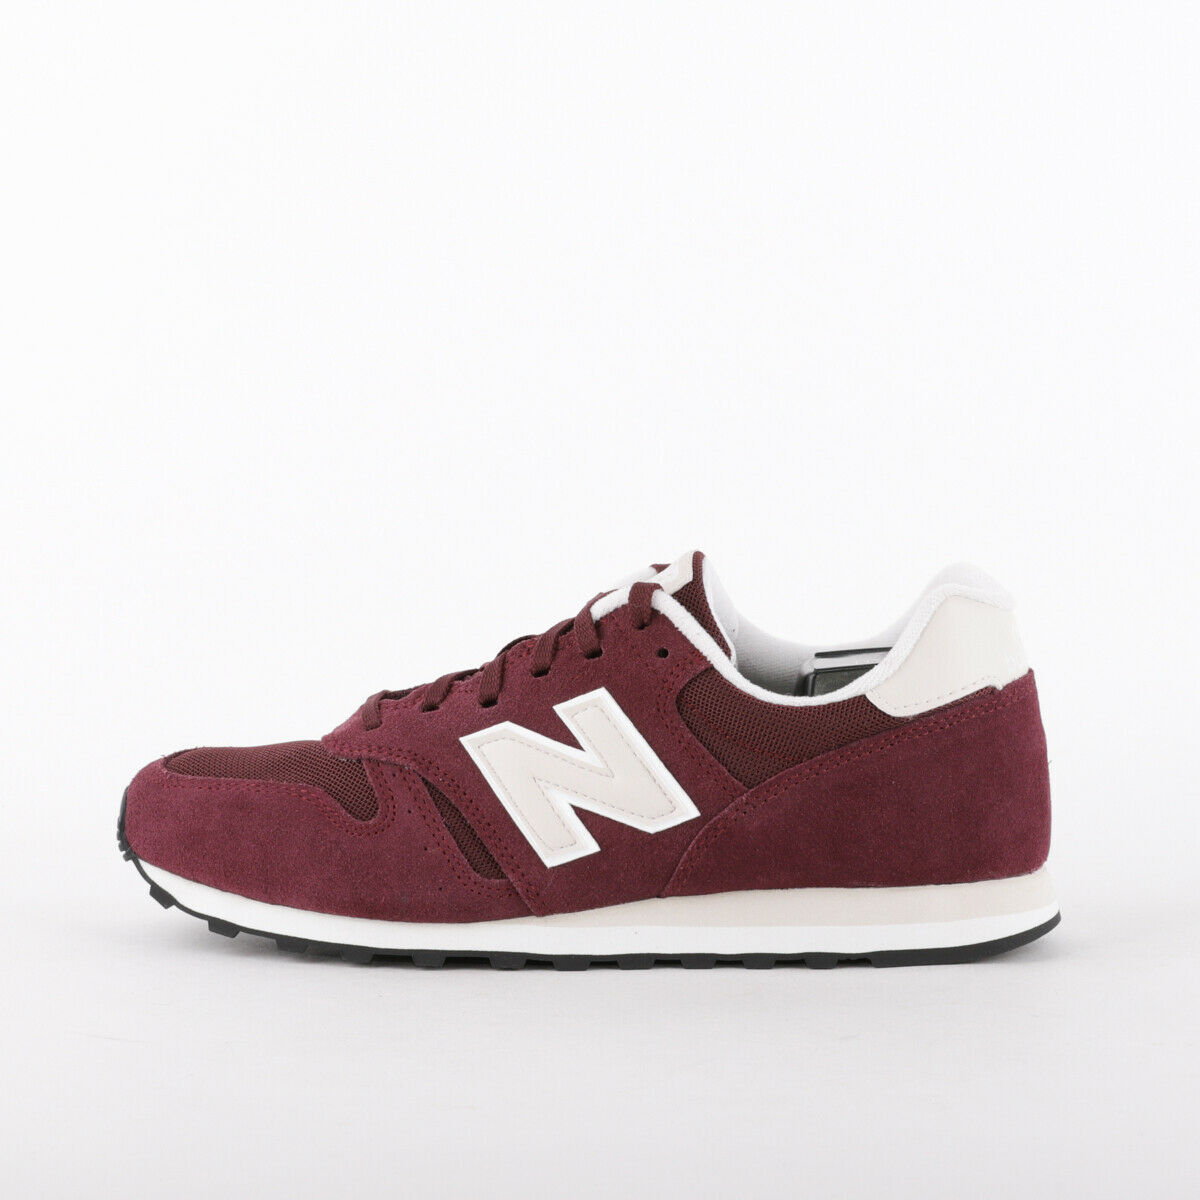 new balance wl373 burgundy